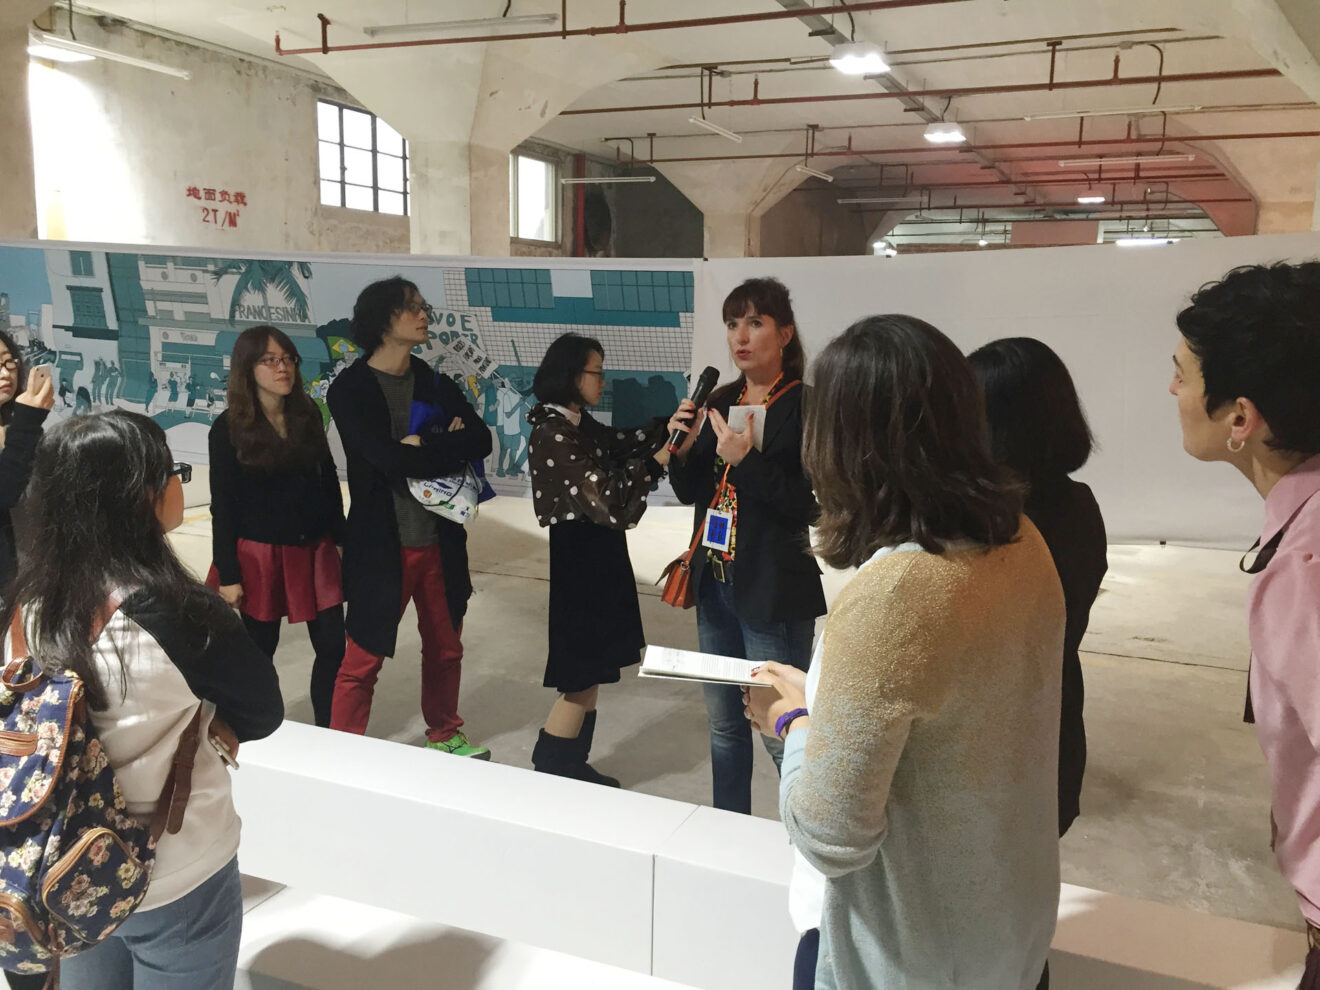 Tentoonstelling 'Do you hear the people sing?' op de Shenzhen / Hong Kong Biennal for Architecture and Urbanism